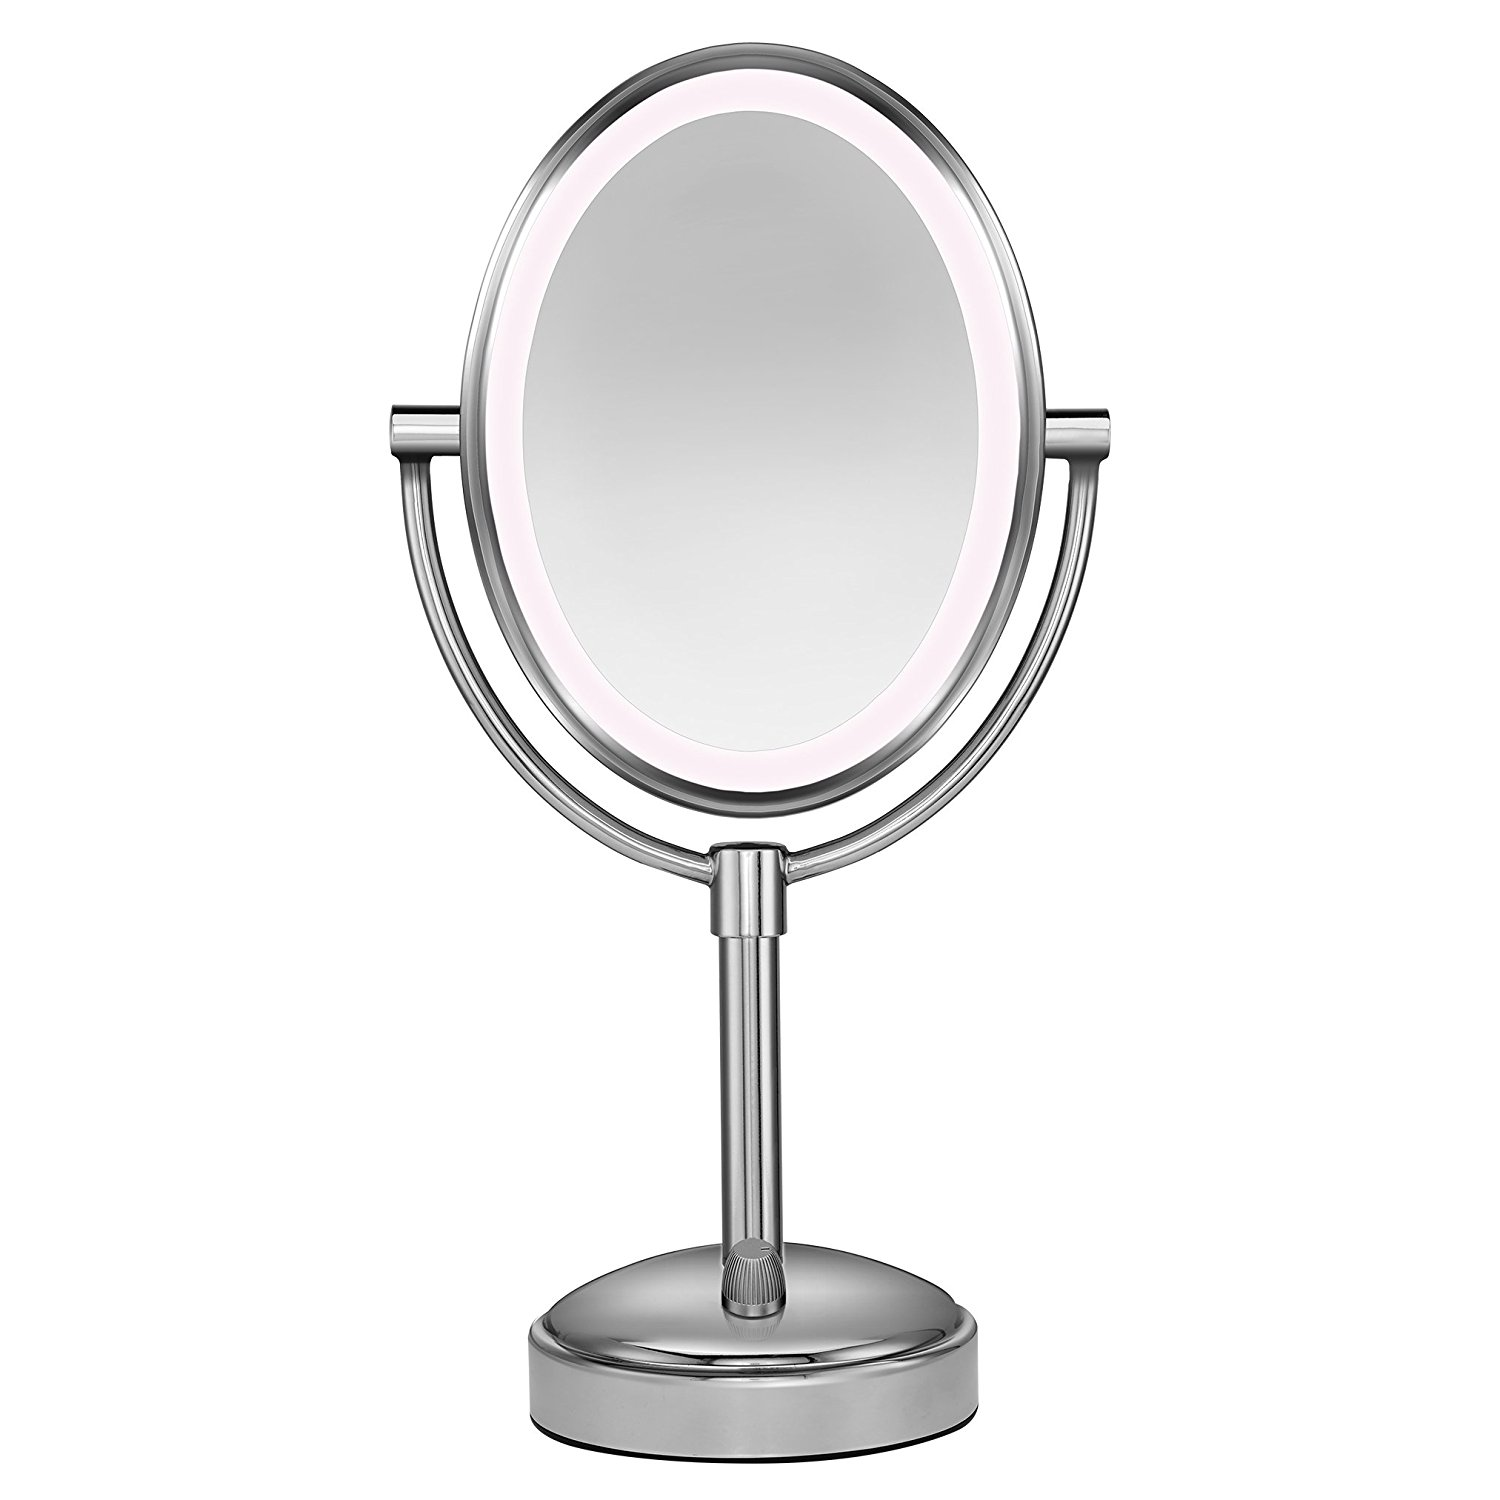 Lighted Vanity Mirrors | Conair Magnifying Mirror with Light | Conair Lighted Makeup Mirror